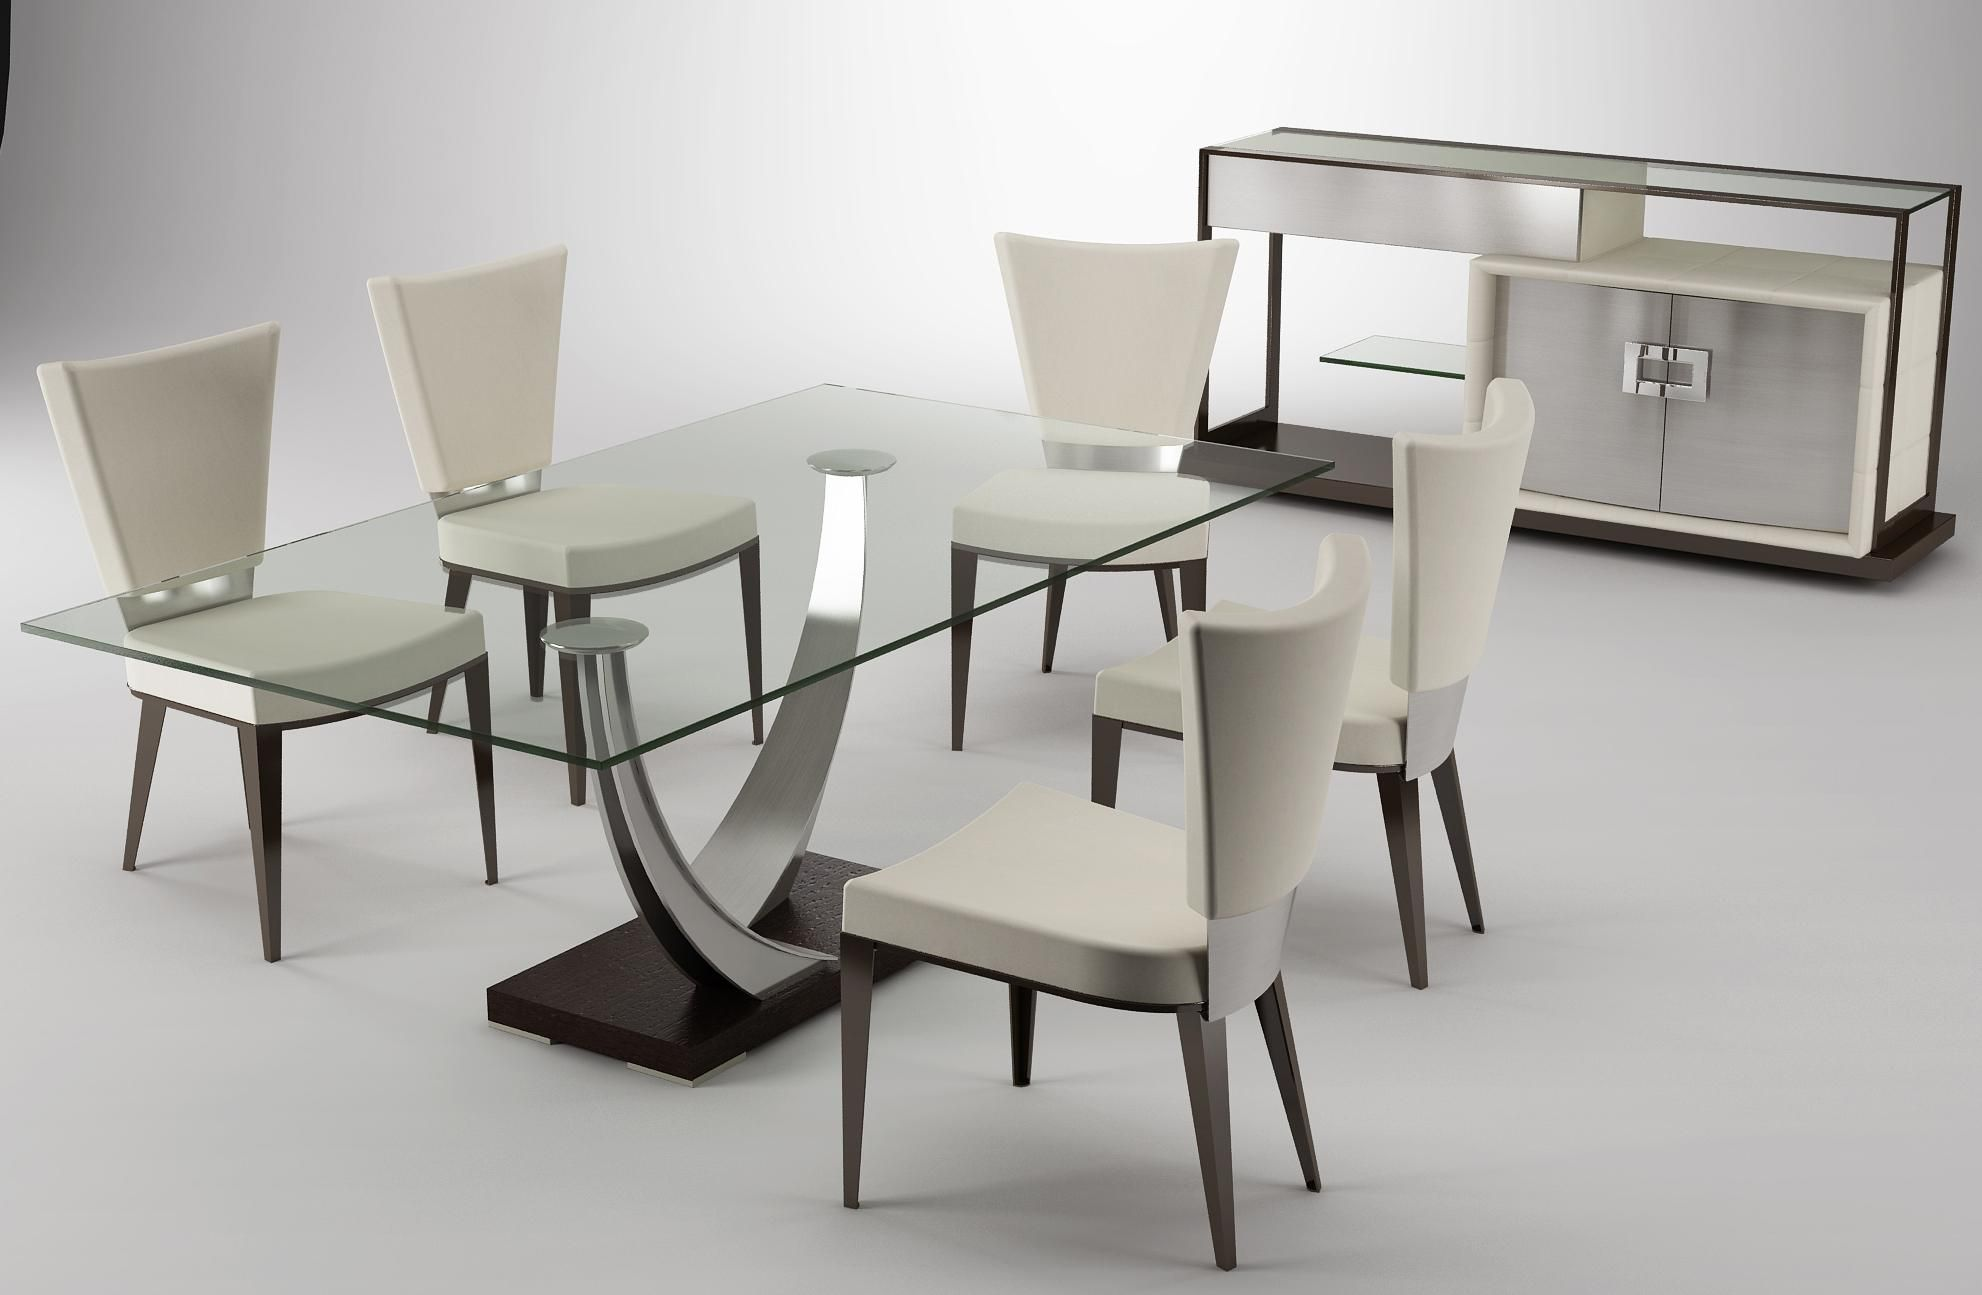 glass contemporary dining tables and chairs. amazing modern stylish dining room table set designs elite tangent glass top furniture stores with tables contemporary and chairs d